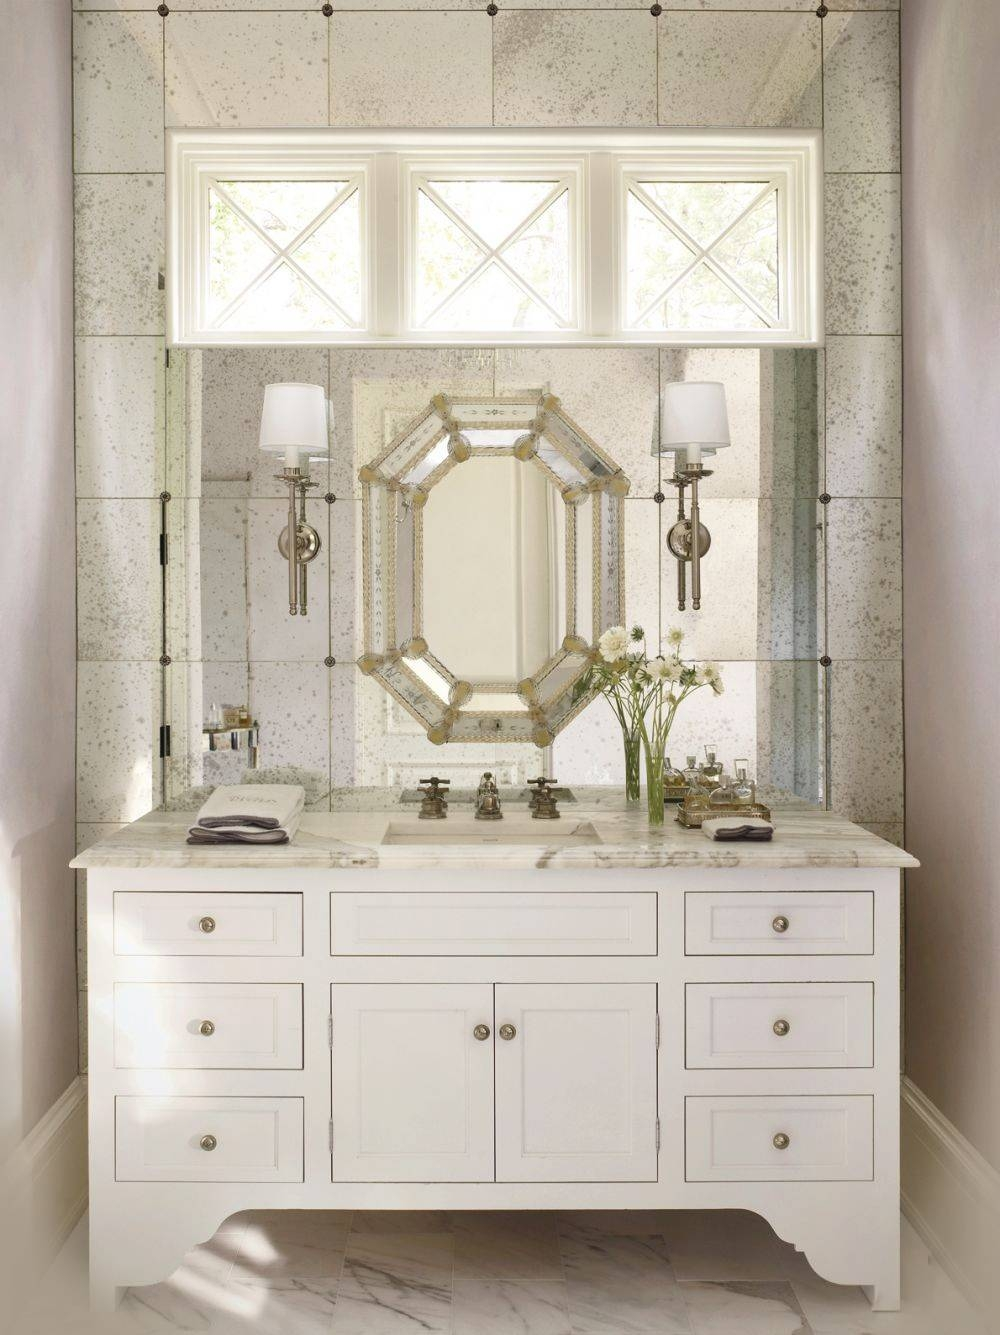 Mirror : Venetian Mirrors Venetian Mirror Bathroom Engaging within Venetian Beaded Mirrors (Image 11 of 15)